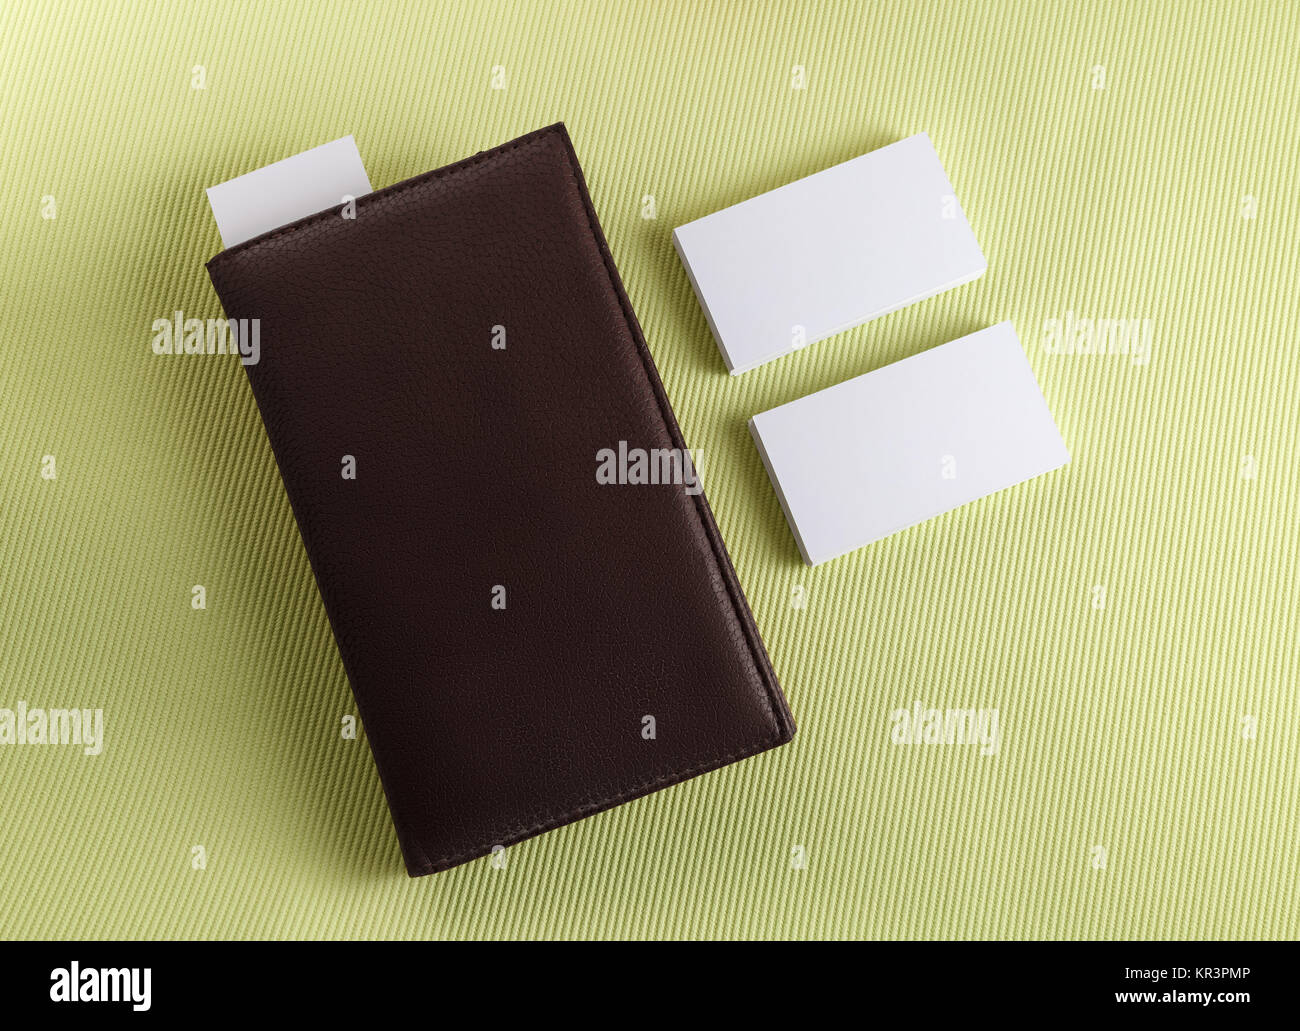 Notepad with business cards Stock Photo, Royalty Free Image ...